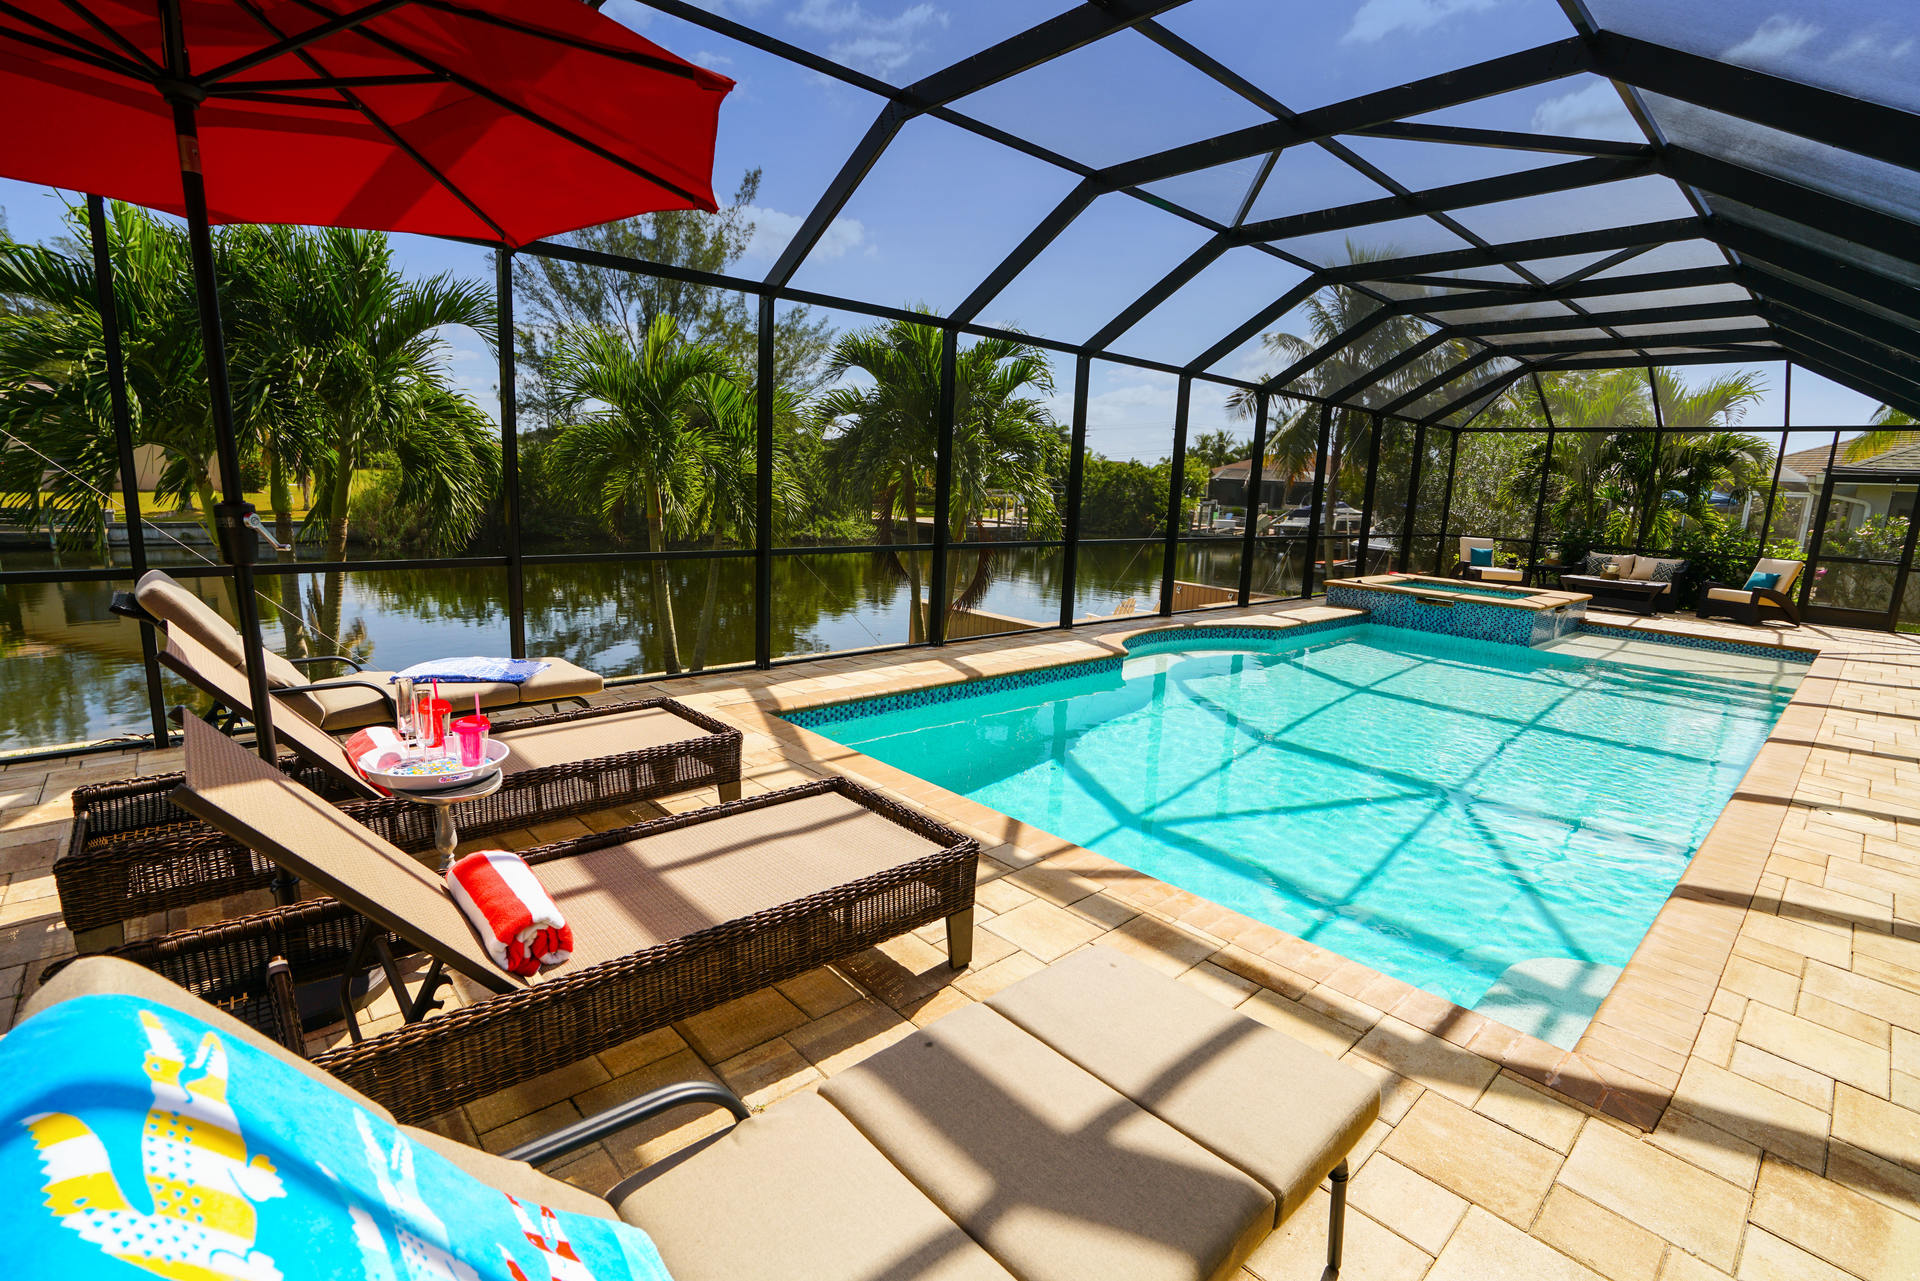 Pool area in Florida